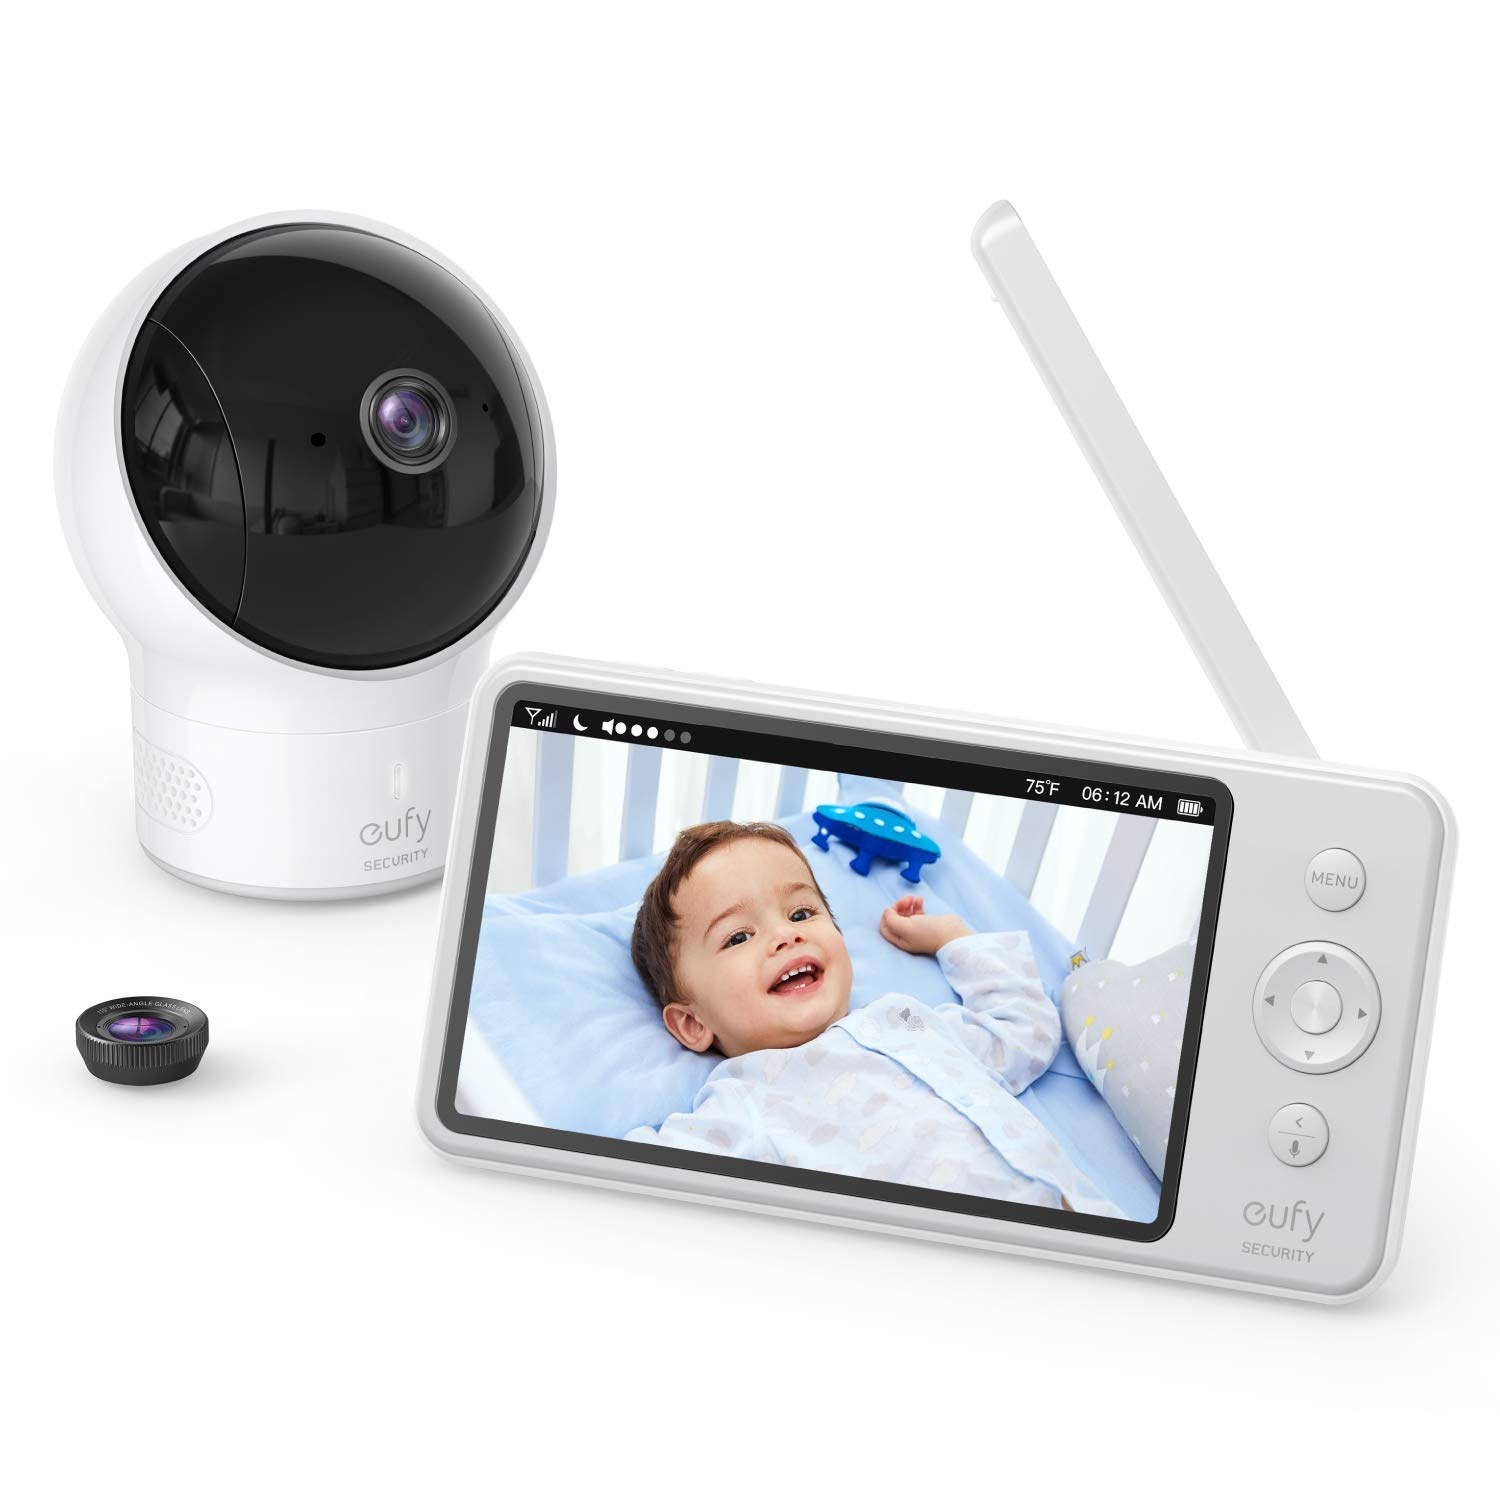 """720p HD Resolution Night Vision eufy Security SpaceView Video Baby Monitor 5/"""" LCD Display Ideal for New Moms Day-Long Battery 110/° Wide-Angle Lens Included Baby Monitor"""